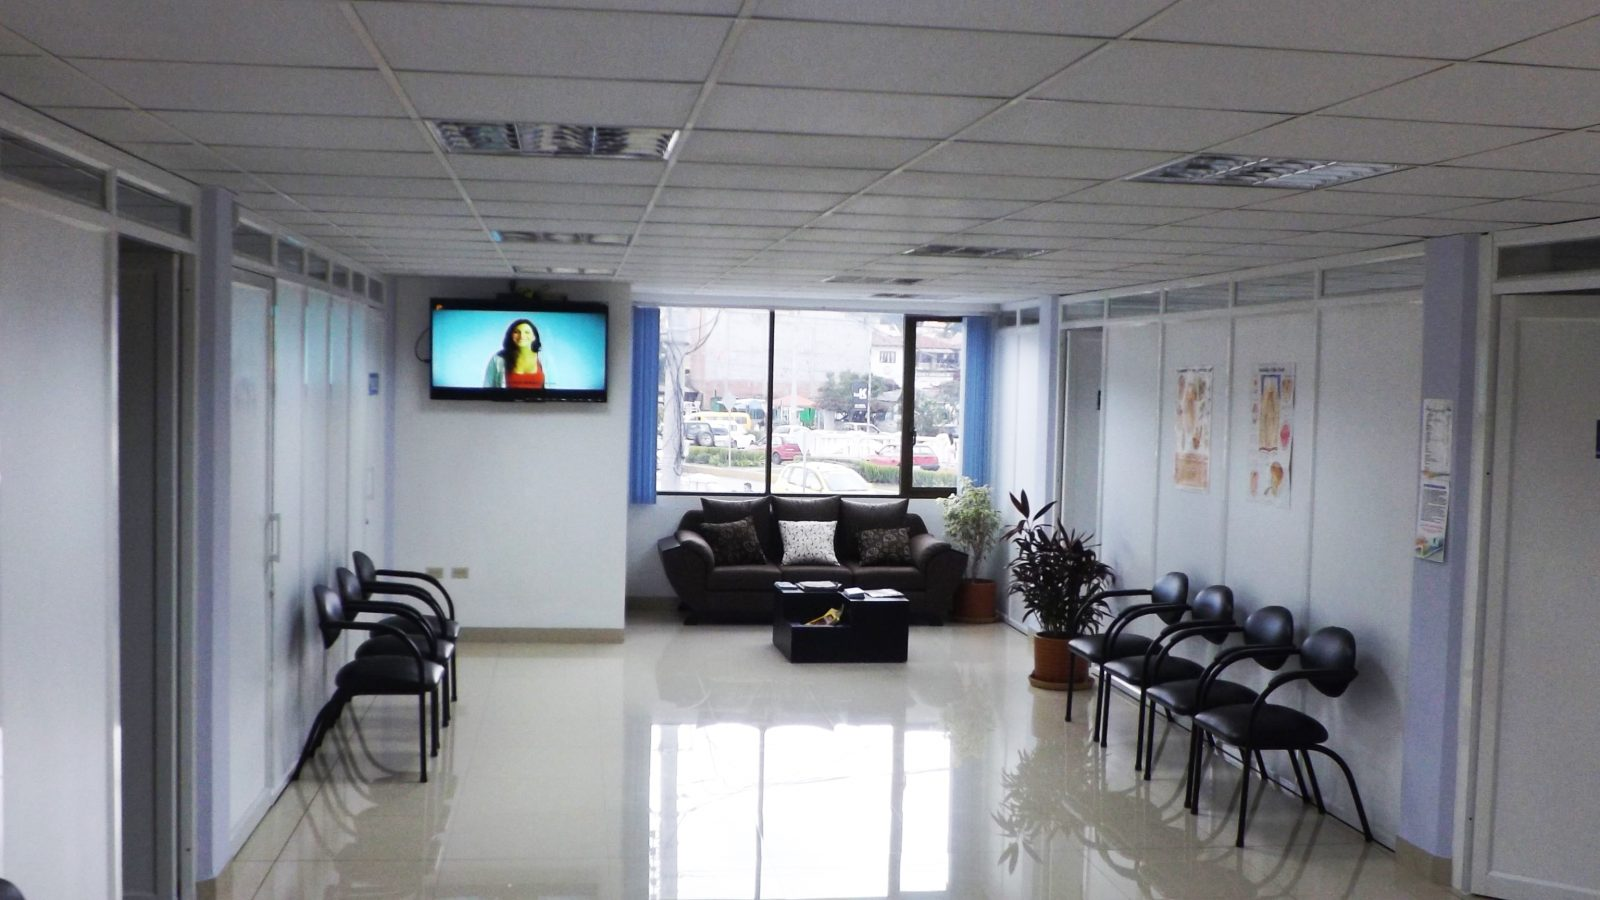 Find Health Waiting Room